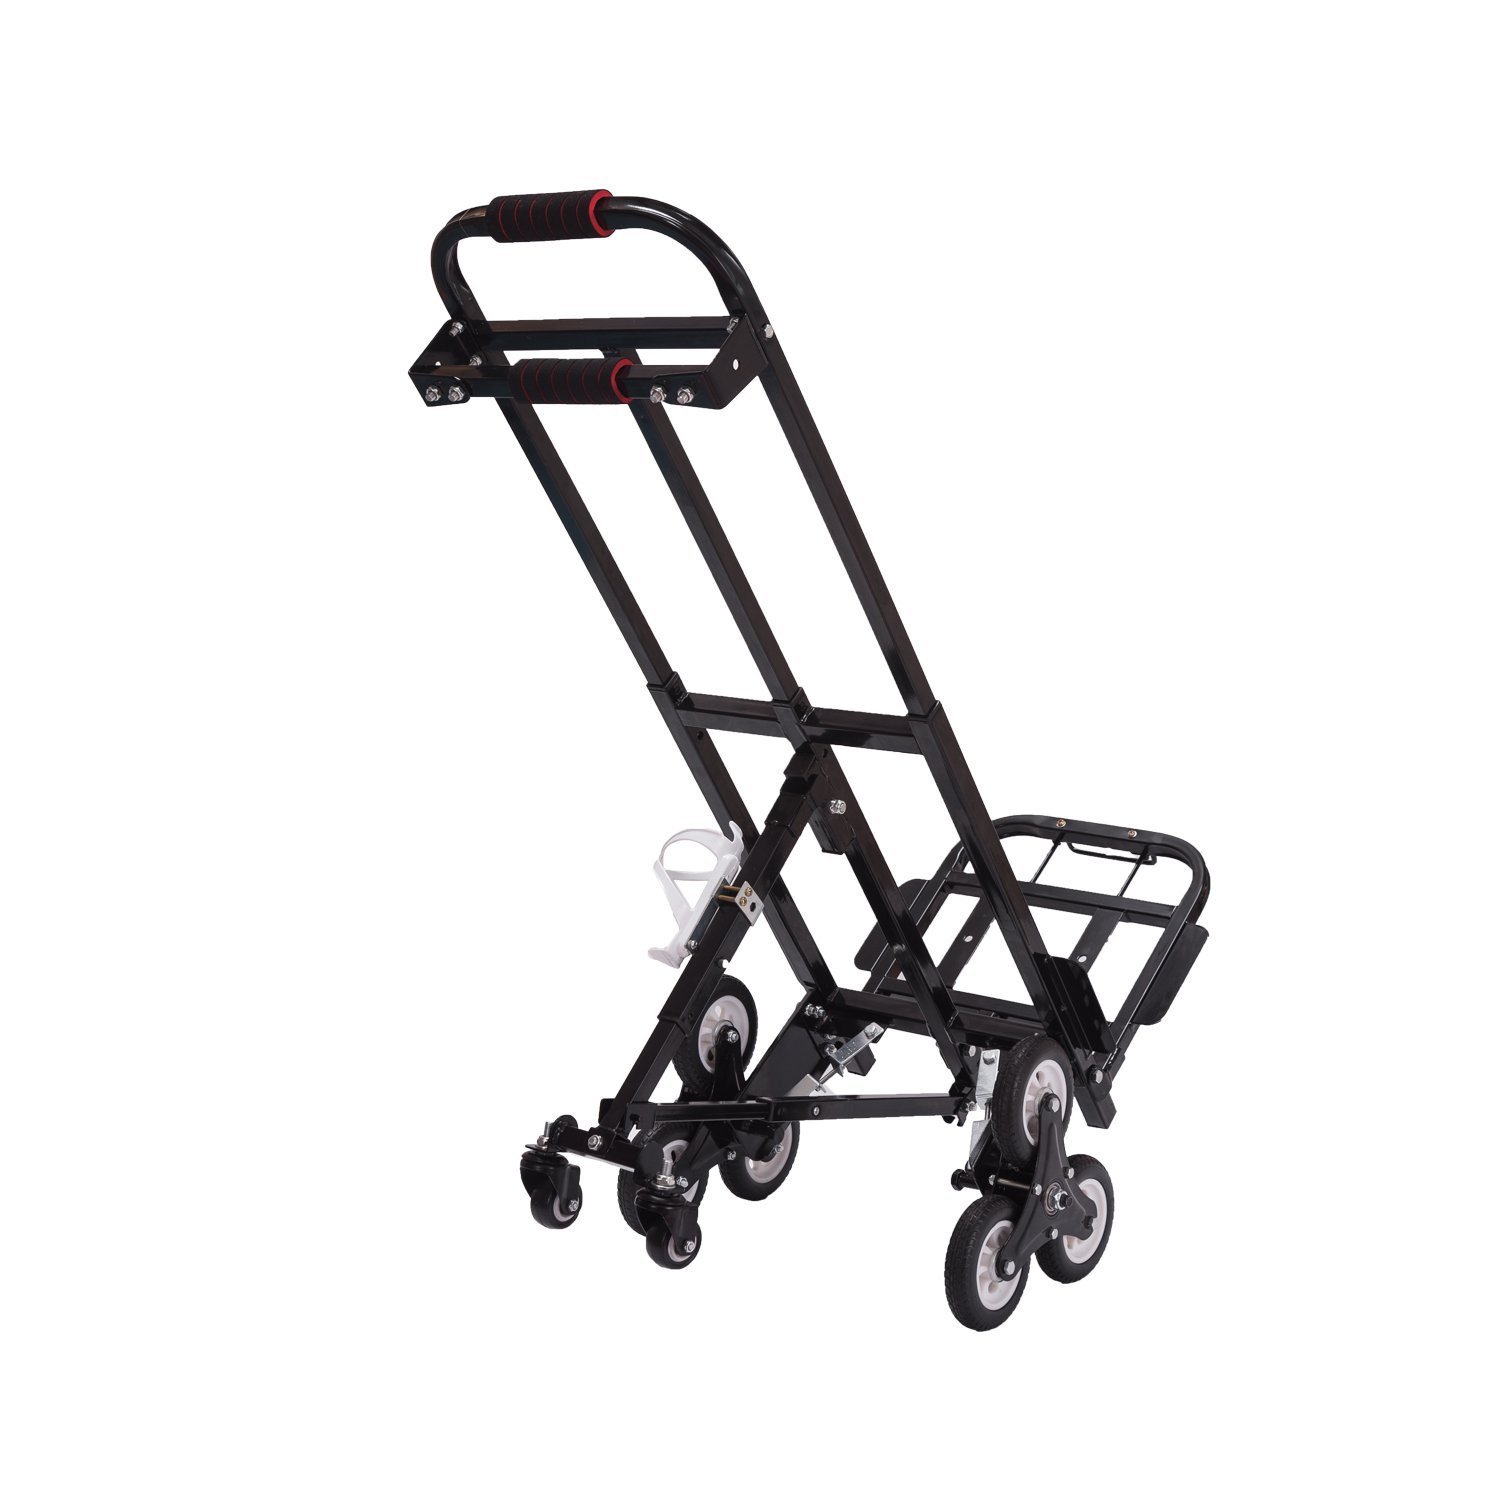 Mecete Enhanced Stair Climbing Cart Portable Climbing Cart 460lb Largest Capacity All Terrain Stair Climbing Hand Truck Heavy Duty with 6 wheels (Black) with Universal wheels Baking Varnish Shining